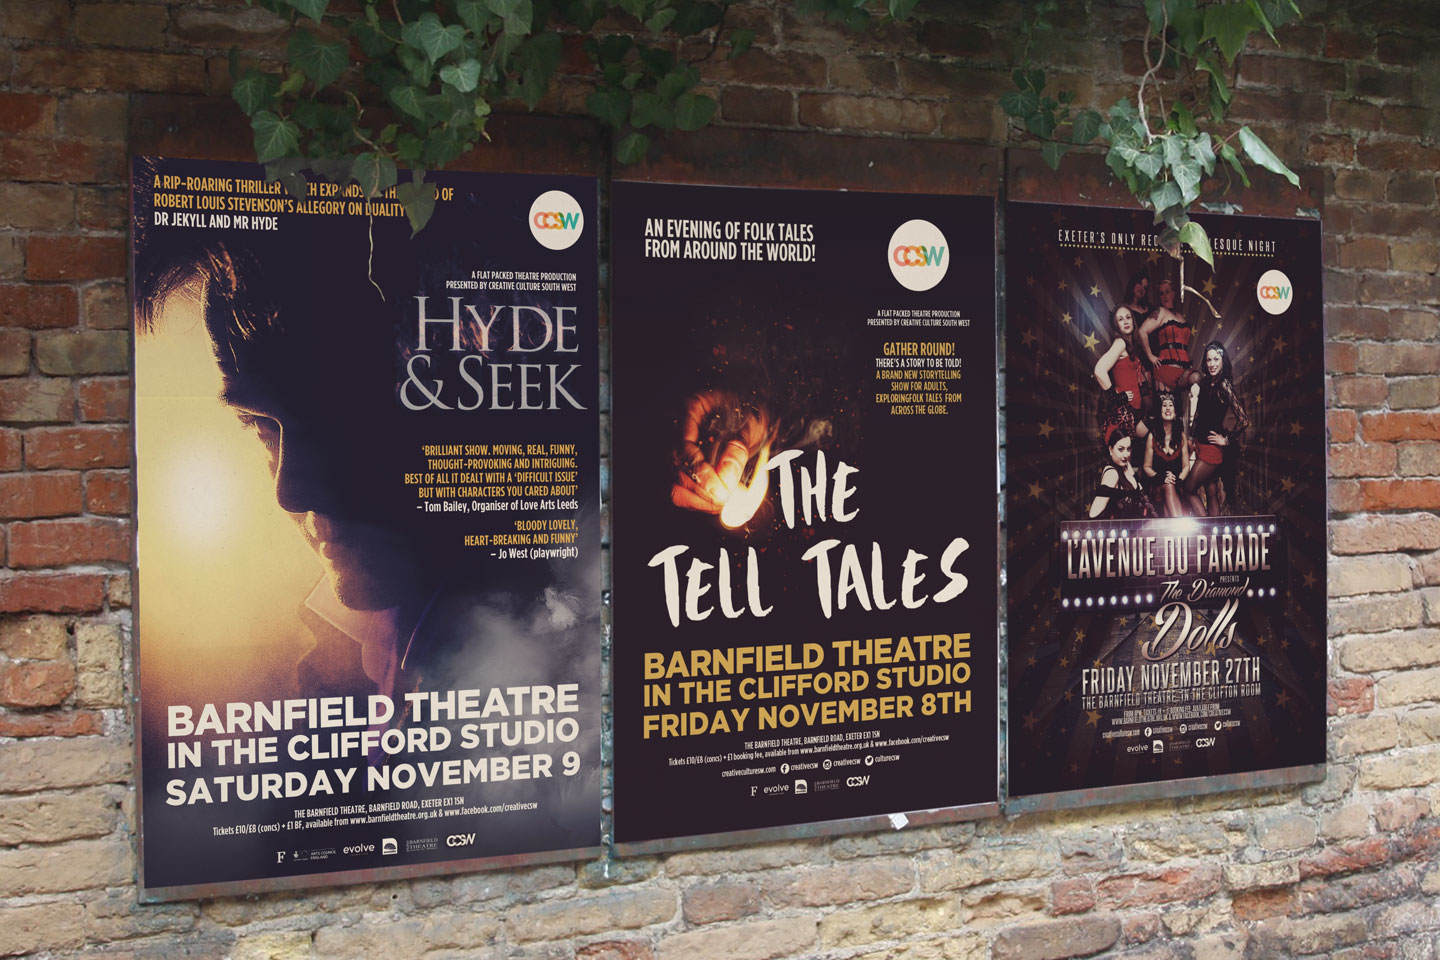 Evolve Promotion - Barnfield Theatre Outdoor Billboards Posters